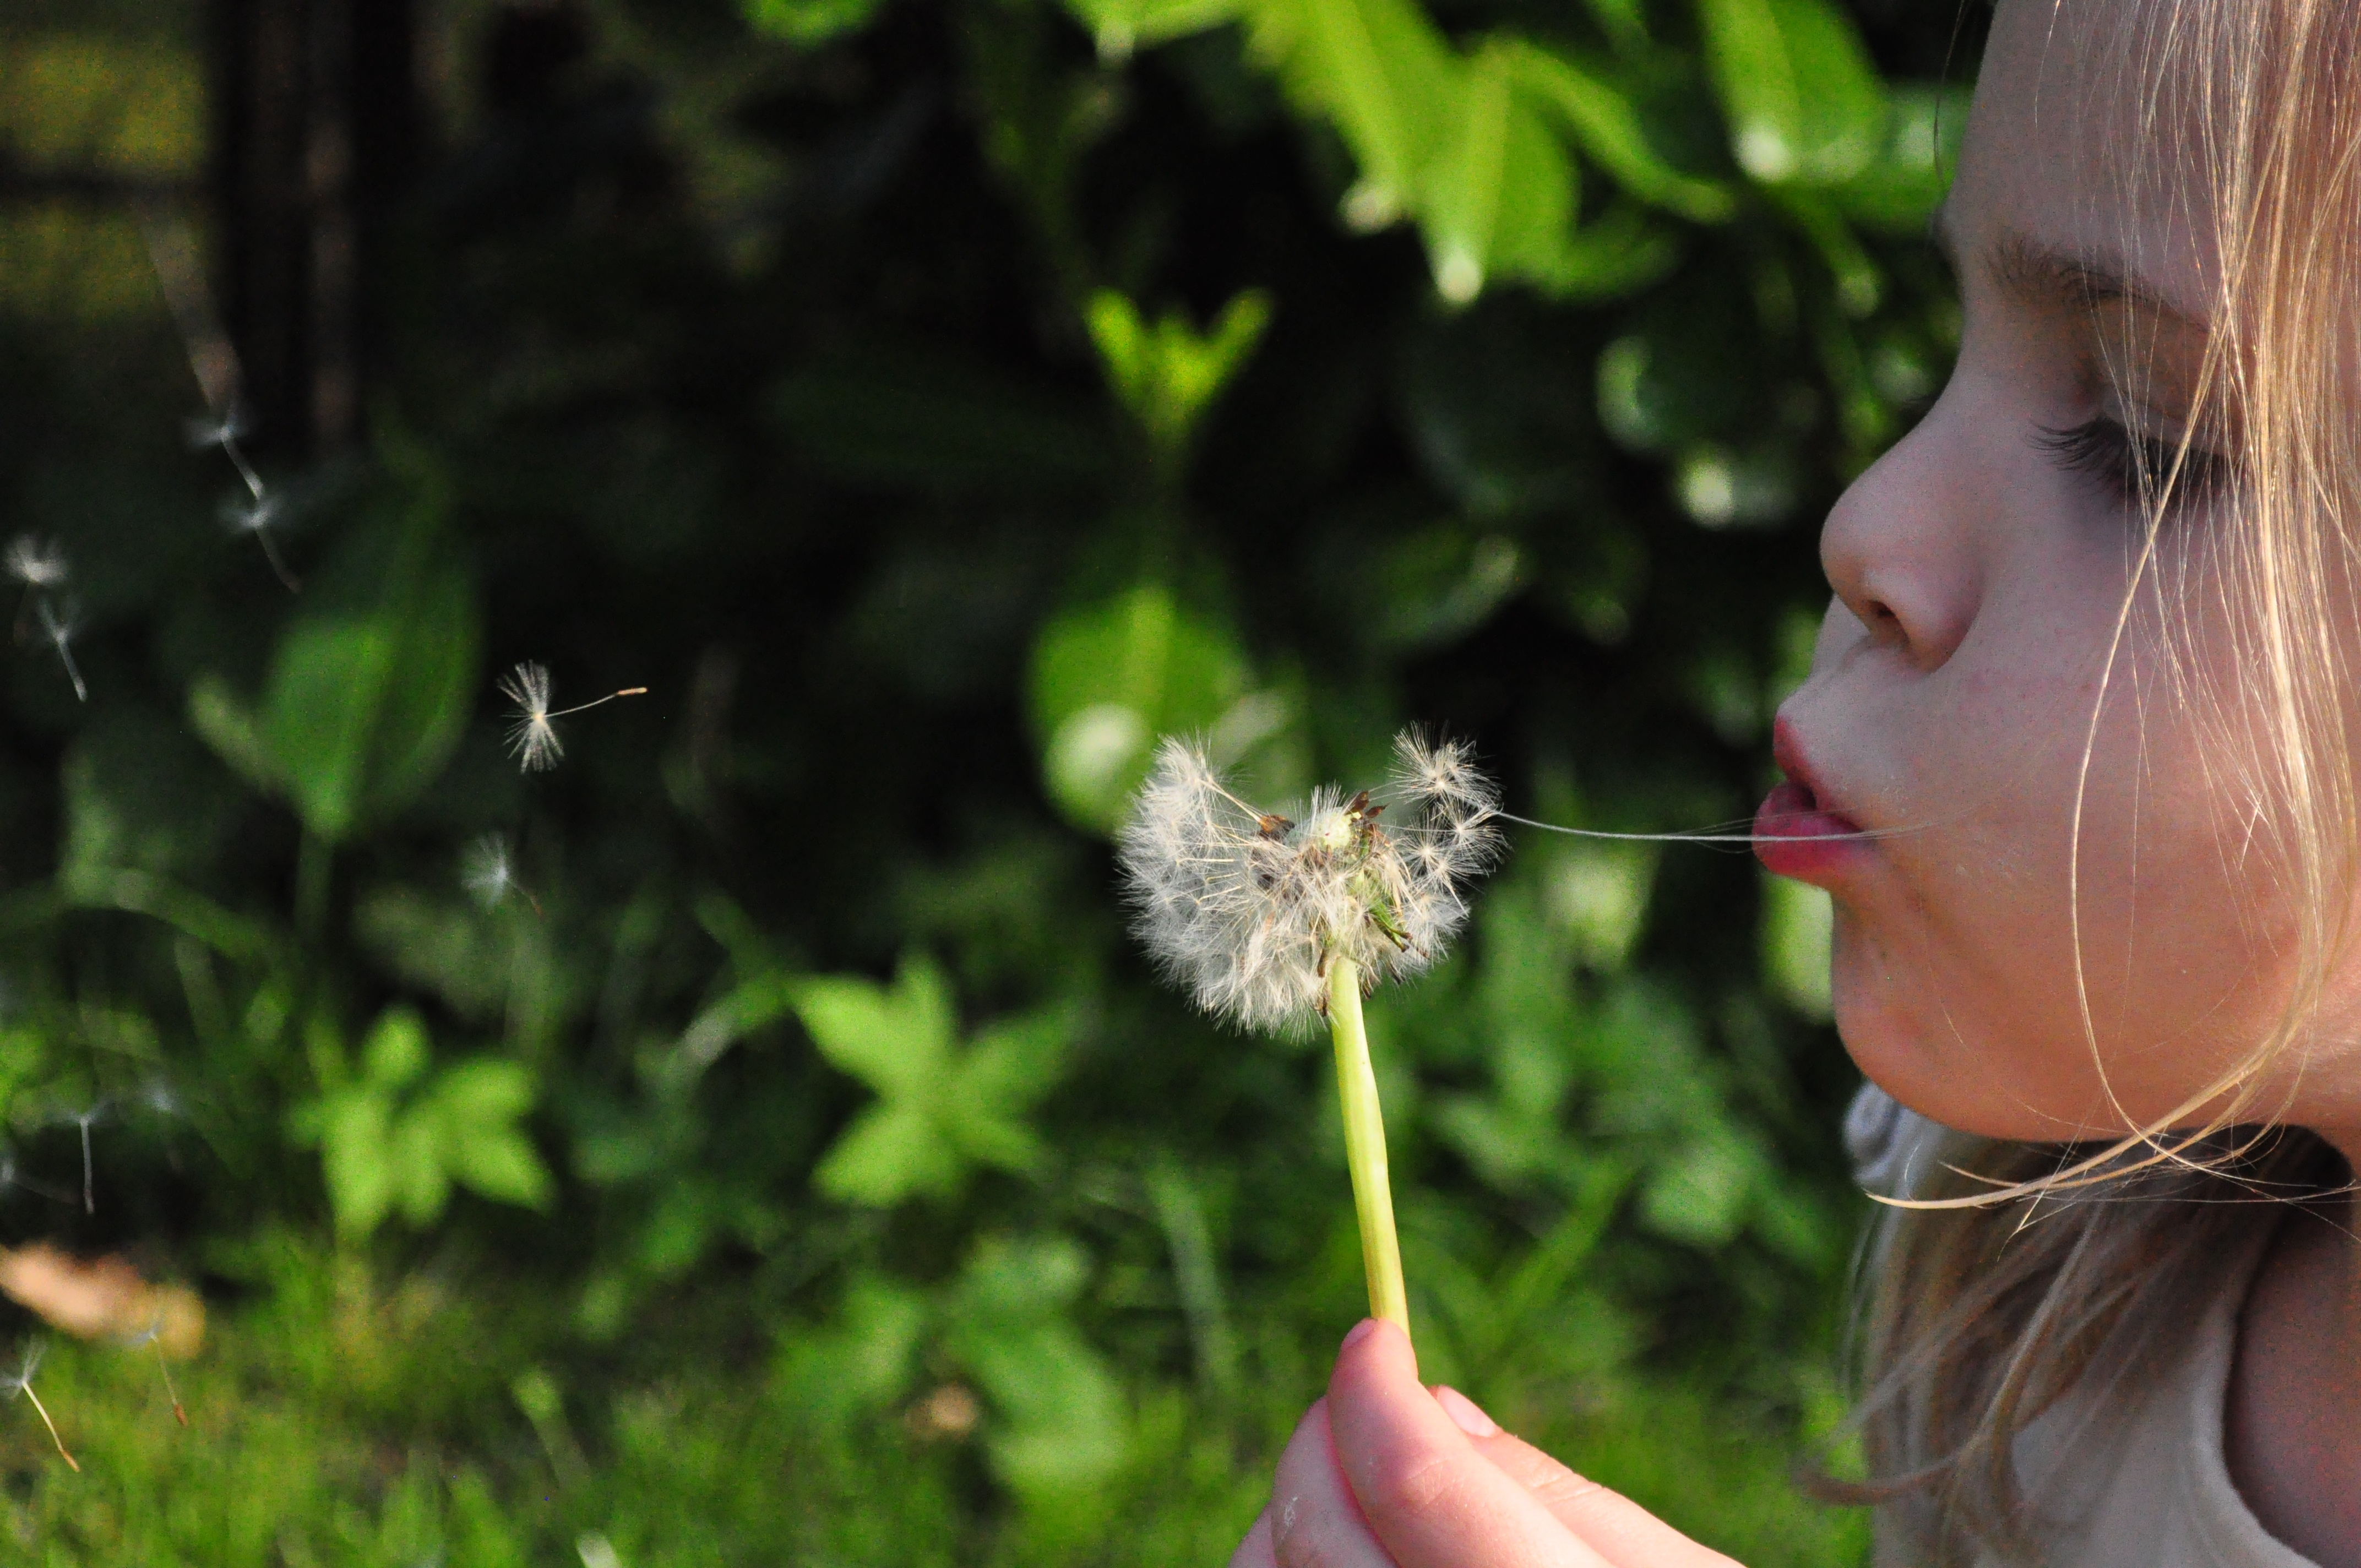 Little Blow, Blow, Blowball, Blowing, Flower, HQ Photo